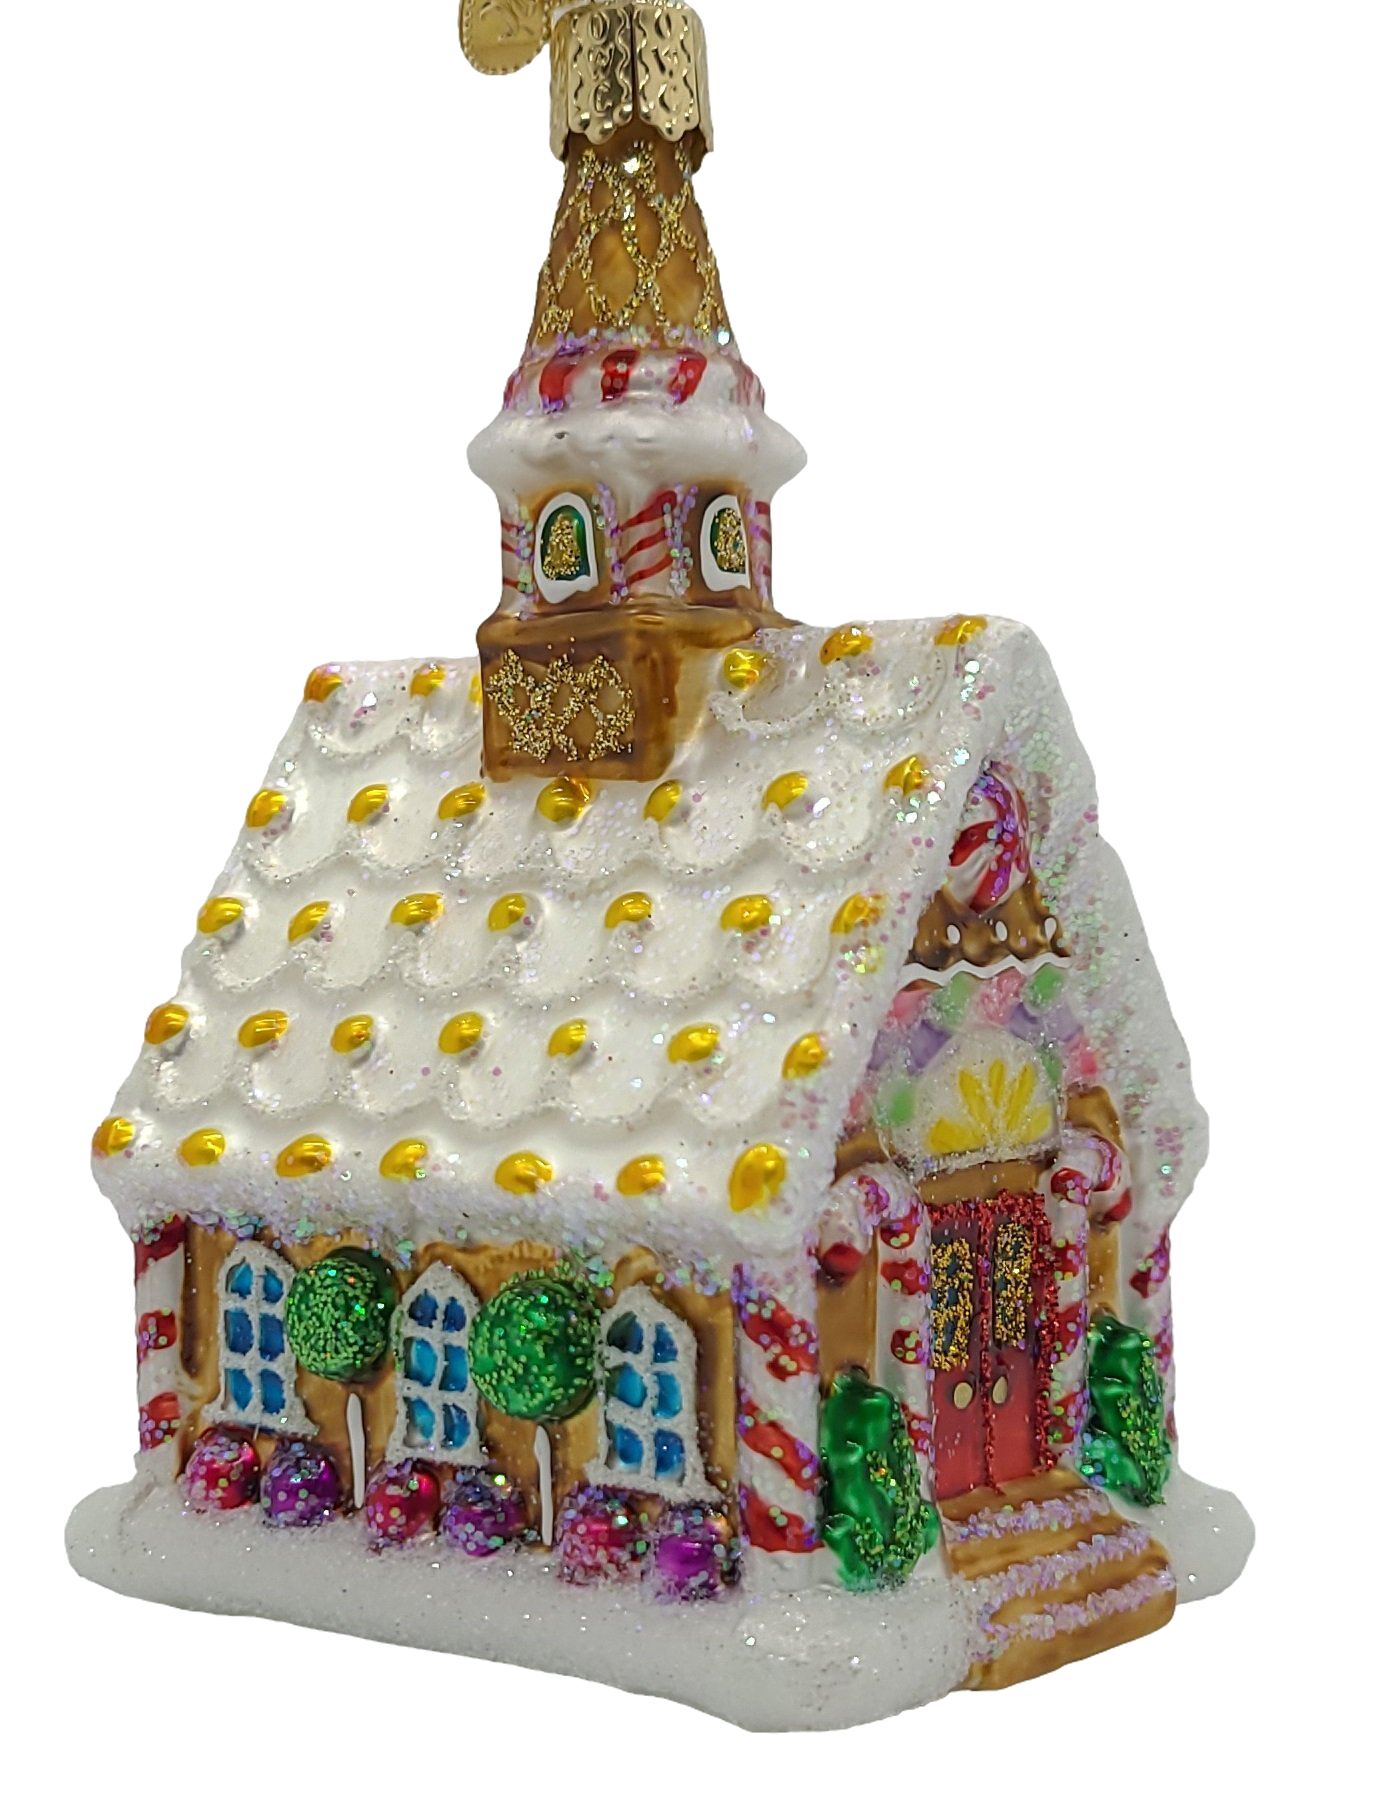 Blown Glass Hanging Gingerbread Church Christmas Ornament - Schmidt Christmas Market Christmas Decoration